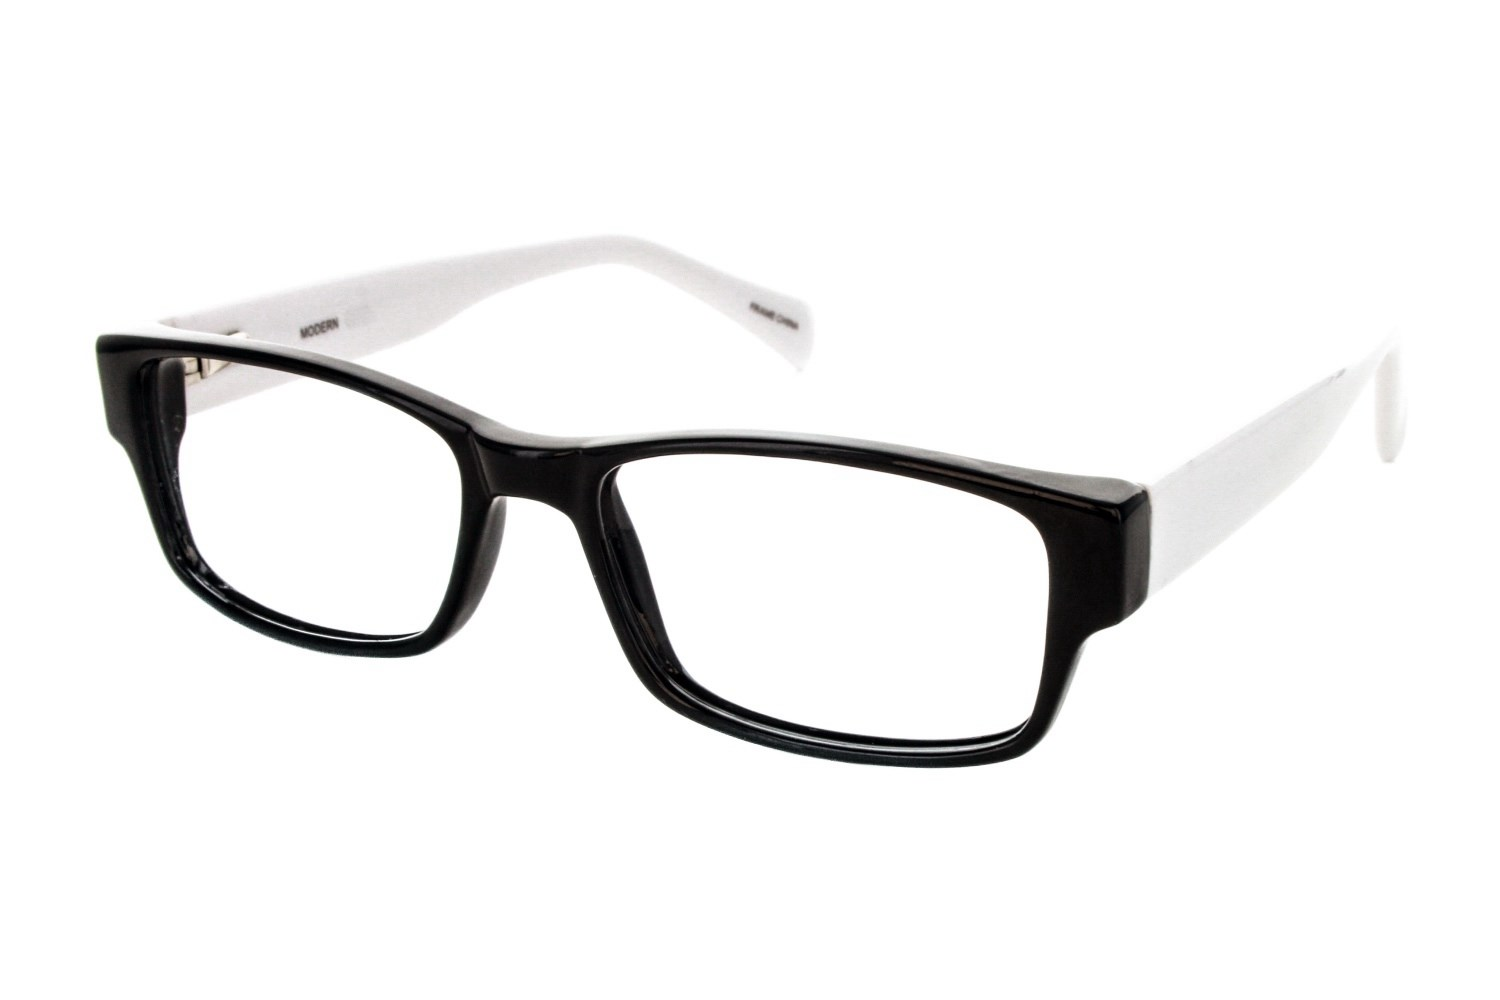 c41ef990aeda Lunettos Clark Prescription Eyeglasses - properopticallook